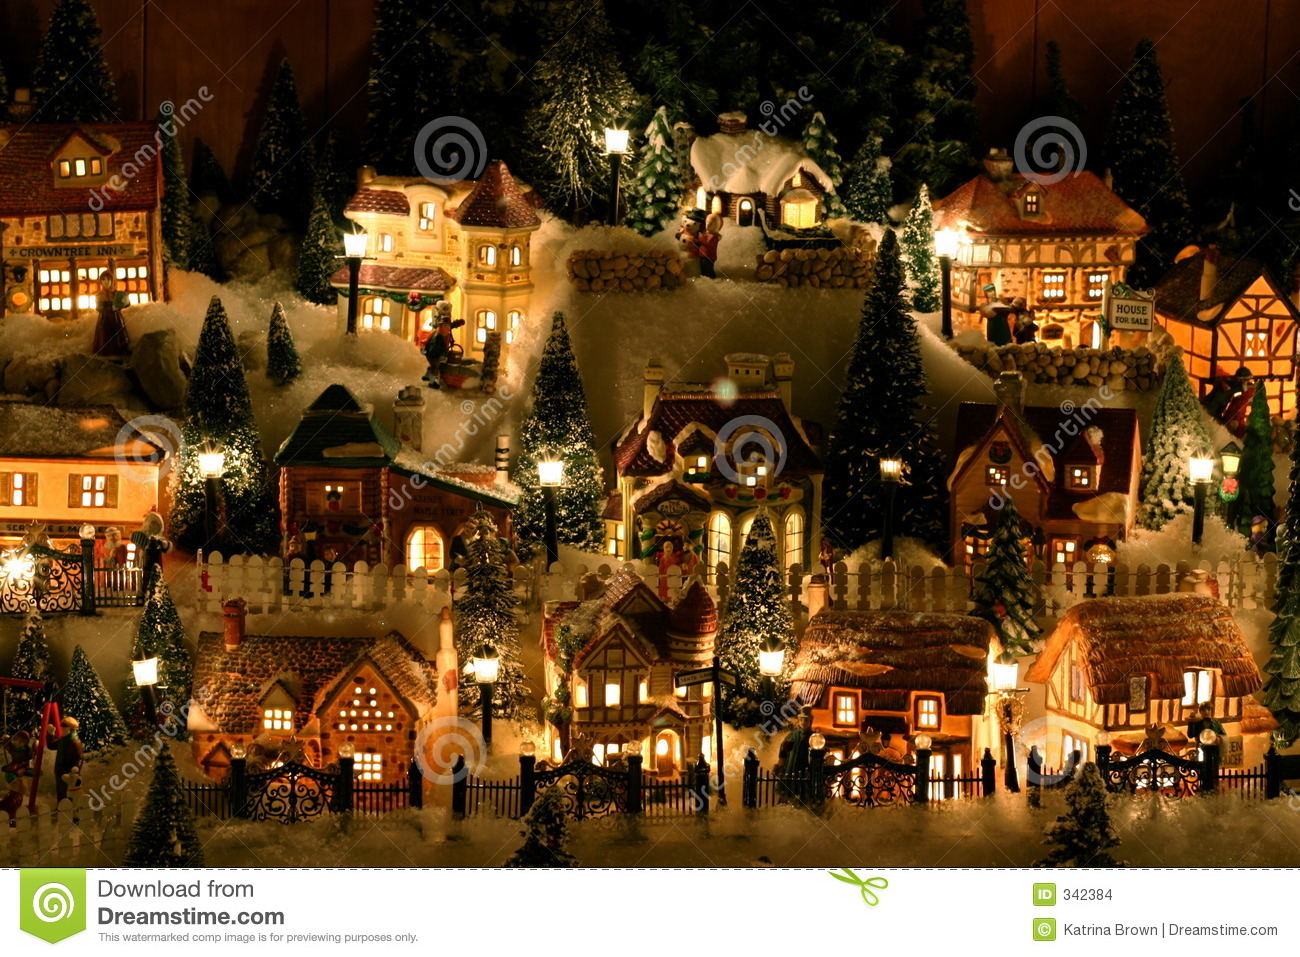 Miniature Christmas Village Stock Images - Image: 342384